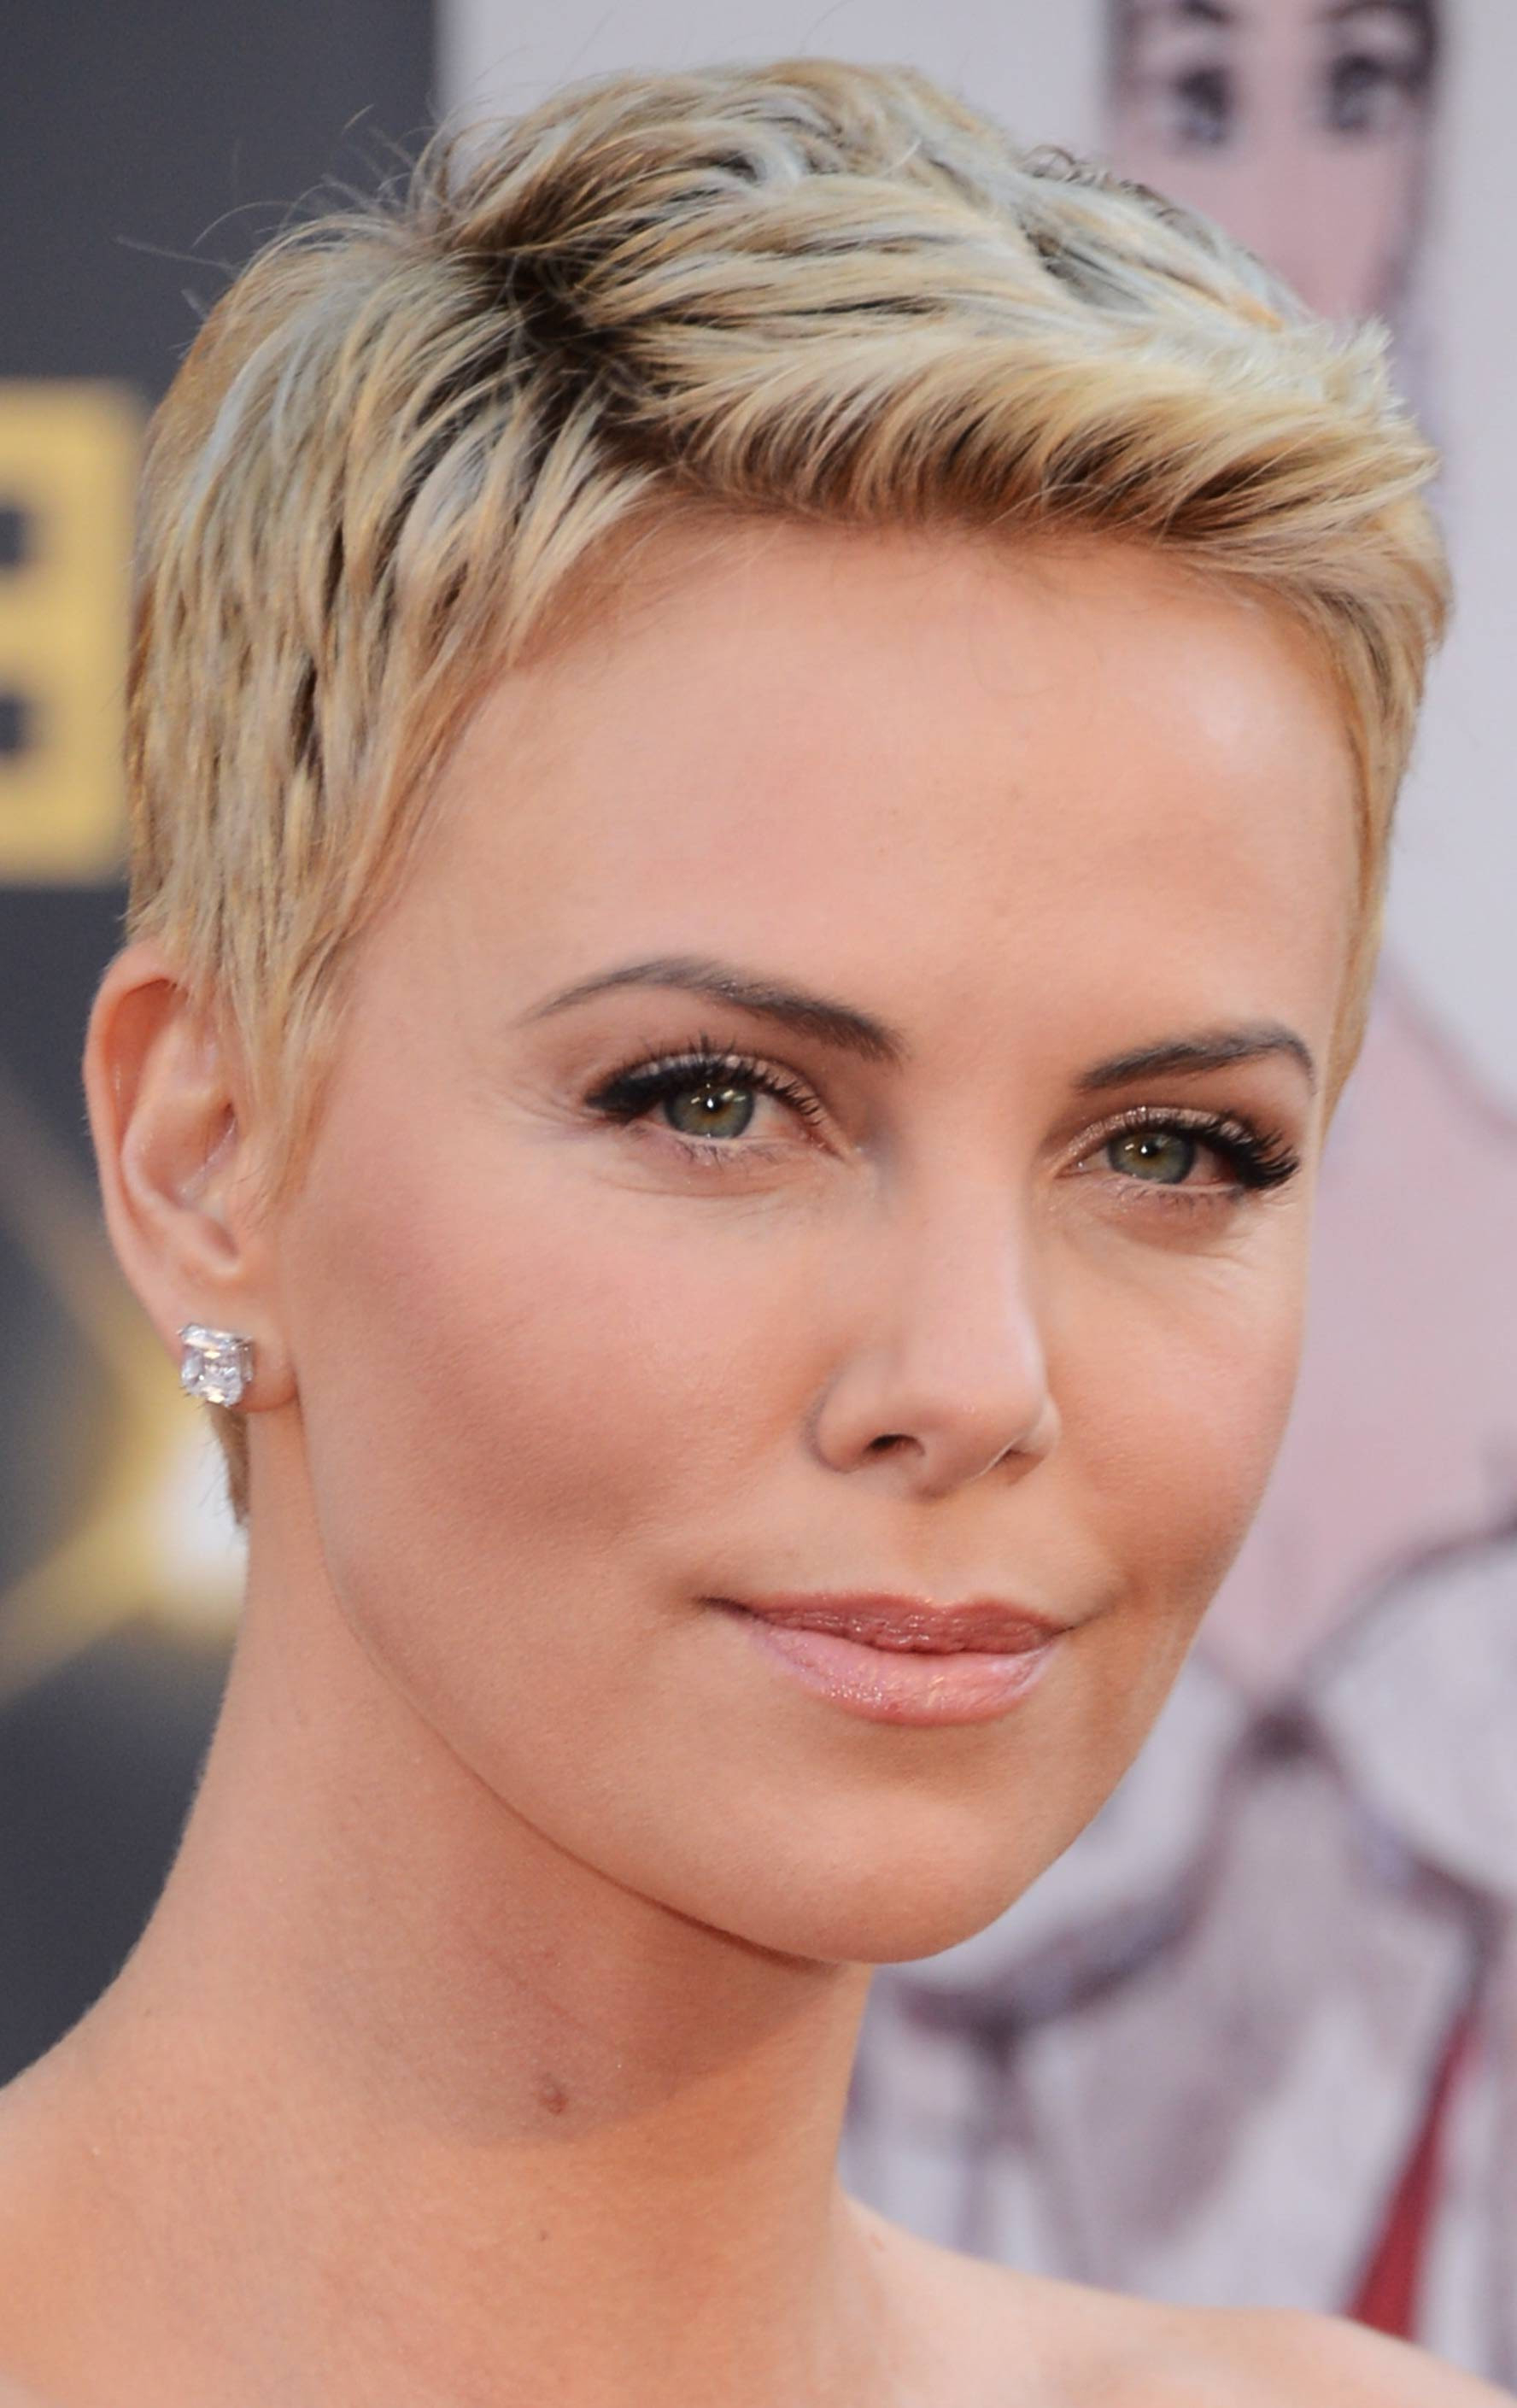 Short Hairstyles For People With Round Faces Beautiful Best Medium Throughout Medium Short Hairstyles For Round Faces (View 17 of 25)